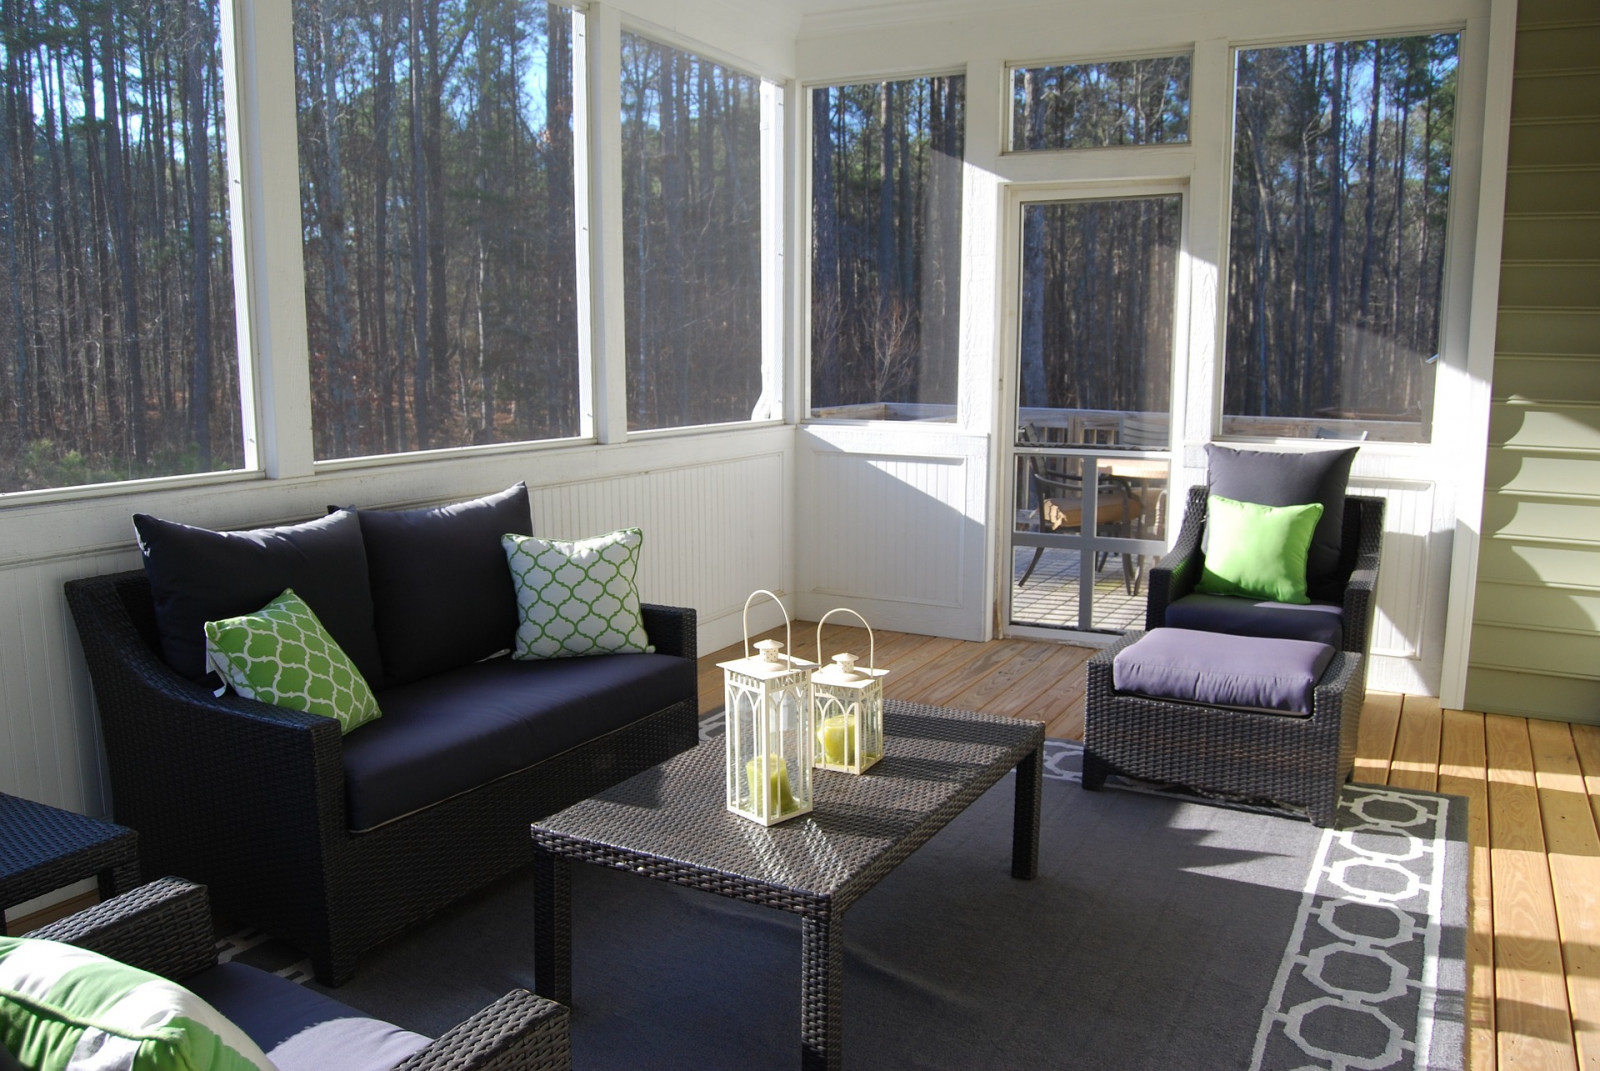 How Much is a Sunroom in New Jersey?